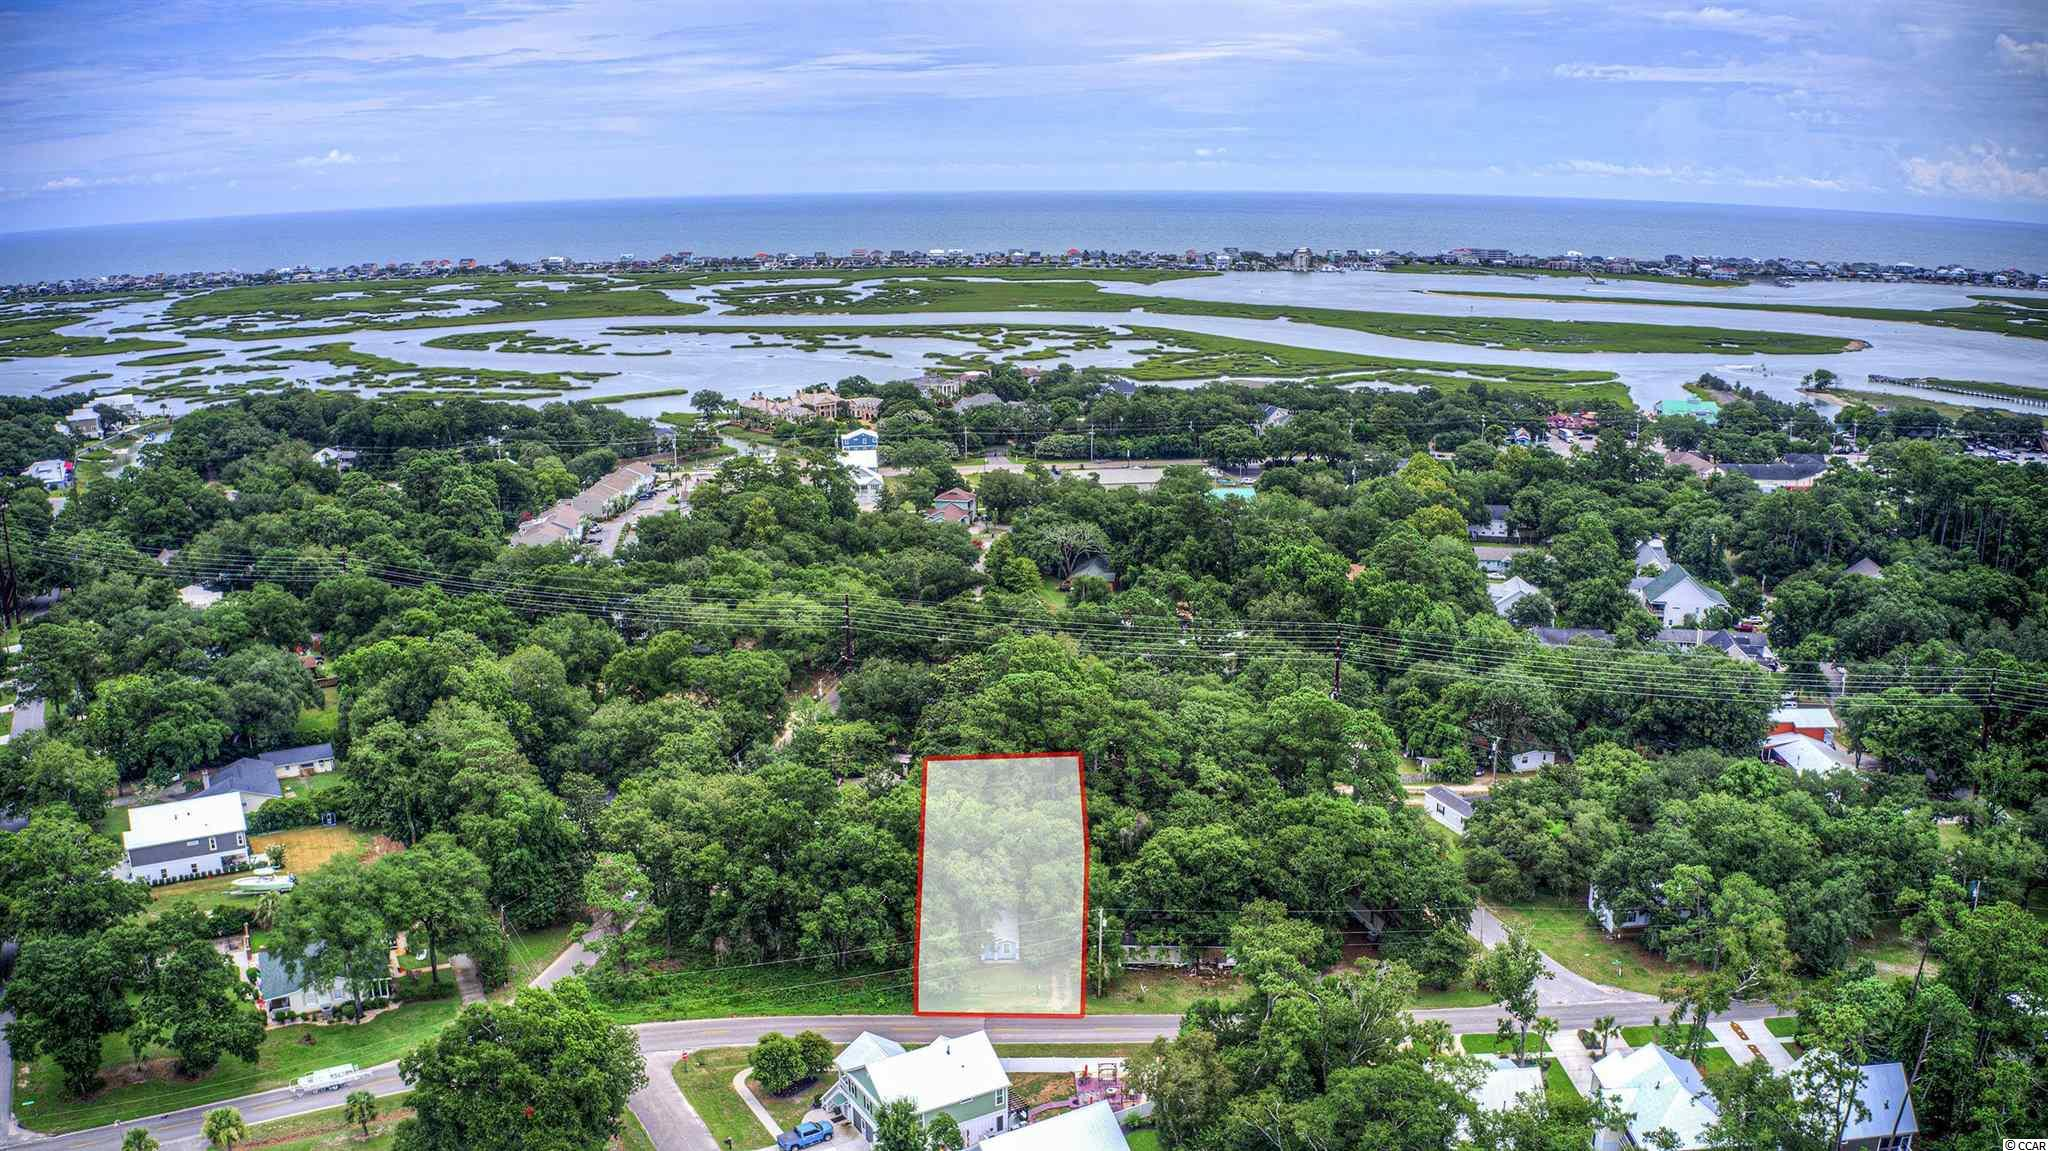 Here is your opportunity to purchase a property that is a hop, skip and a jump to the Marsh Walk, Morse Landing, Huntington Beach State Park, bike paths, and much more. You will NOT find another offering like this in Murrells Inlet Proper. The possibilities with this piece of land are extensive and only limited by one's vision. Perfect location for a primary home or a vacation property. Zoning is GR- General Residential and the total square footage of this lot is 7,380. One may even want to build an investment property here, either long term or short term. The choice is yours. Being Sold As Is.